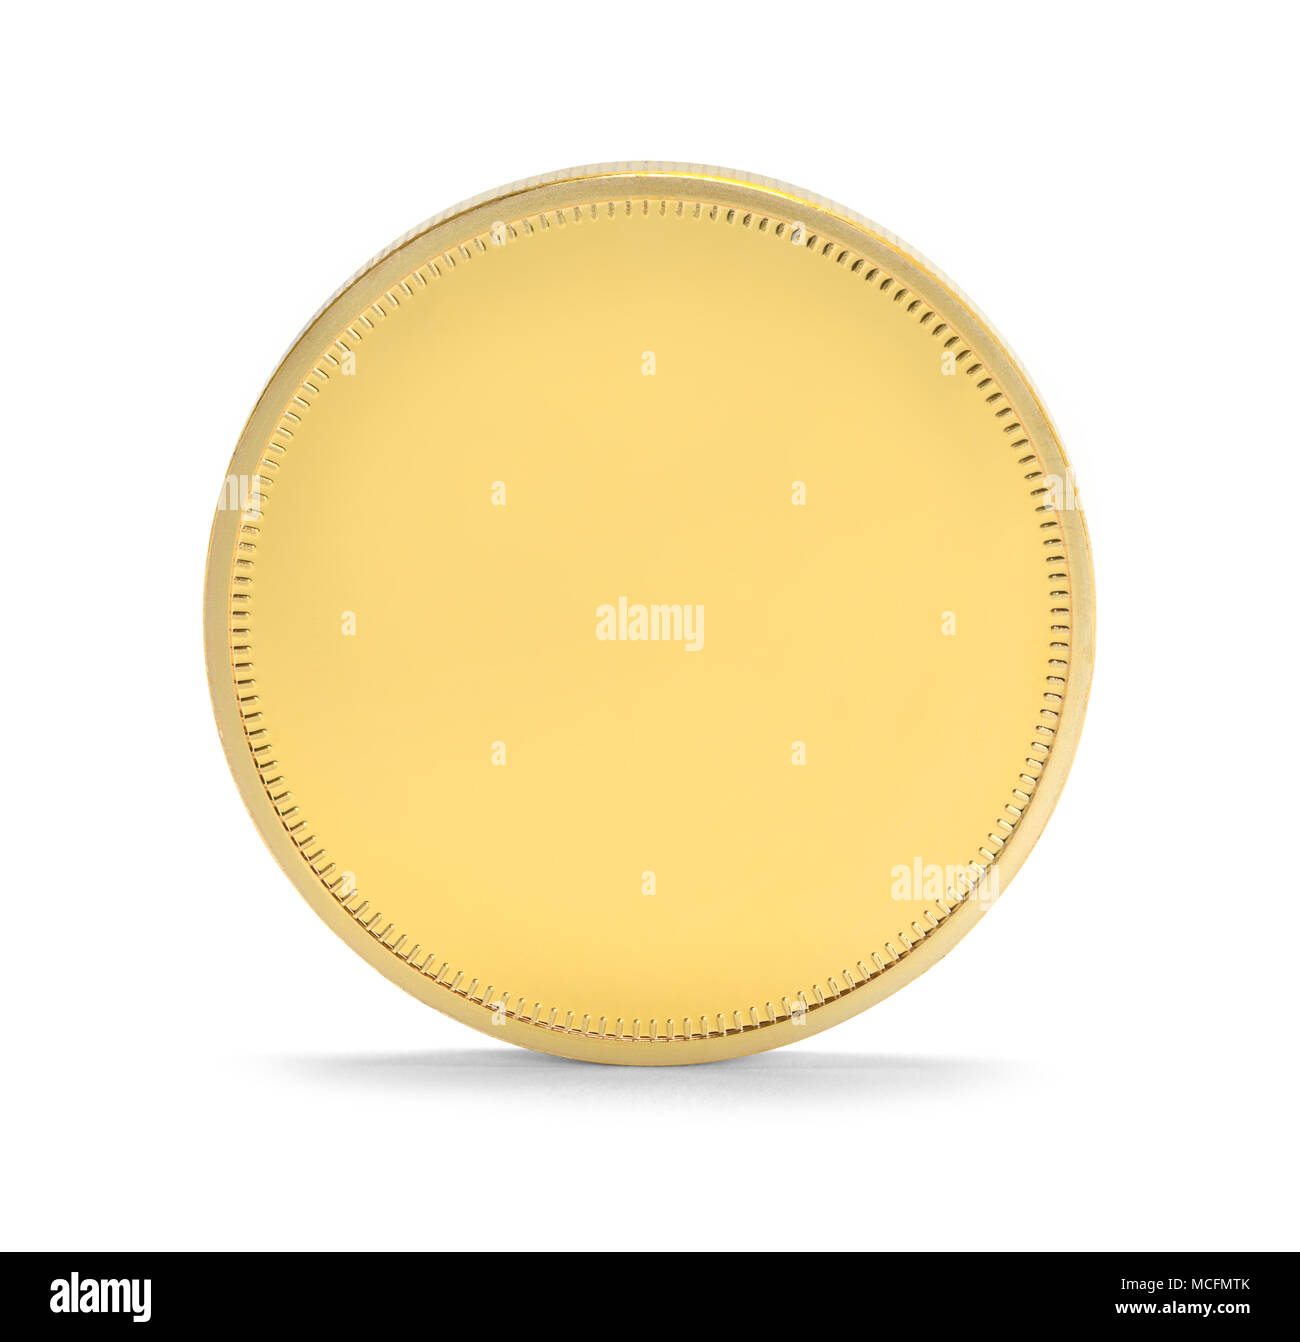 Single Gold Coin Upright Isolated on a White Background. - Stock Image